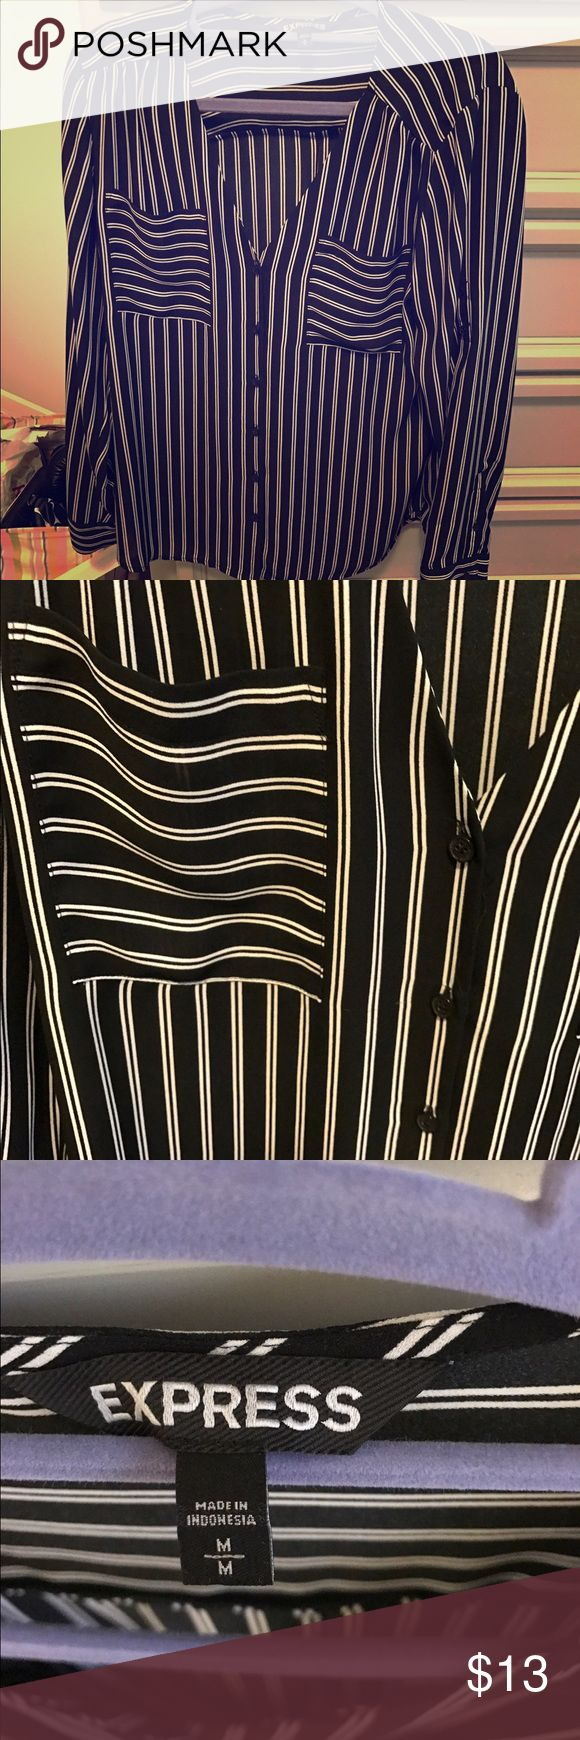 Express portofino shirt w/o collar Express portofino shirt without collar, black with white stripes, hardly worn Express Tops Button Down Shirts